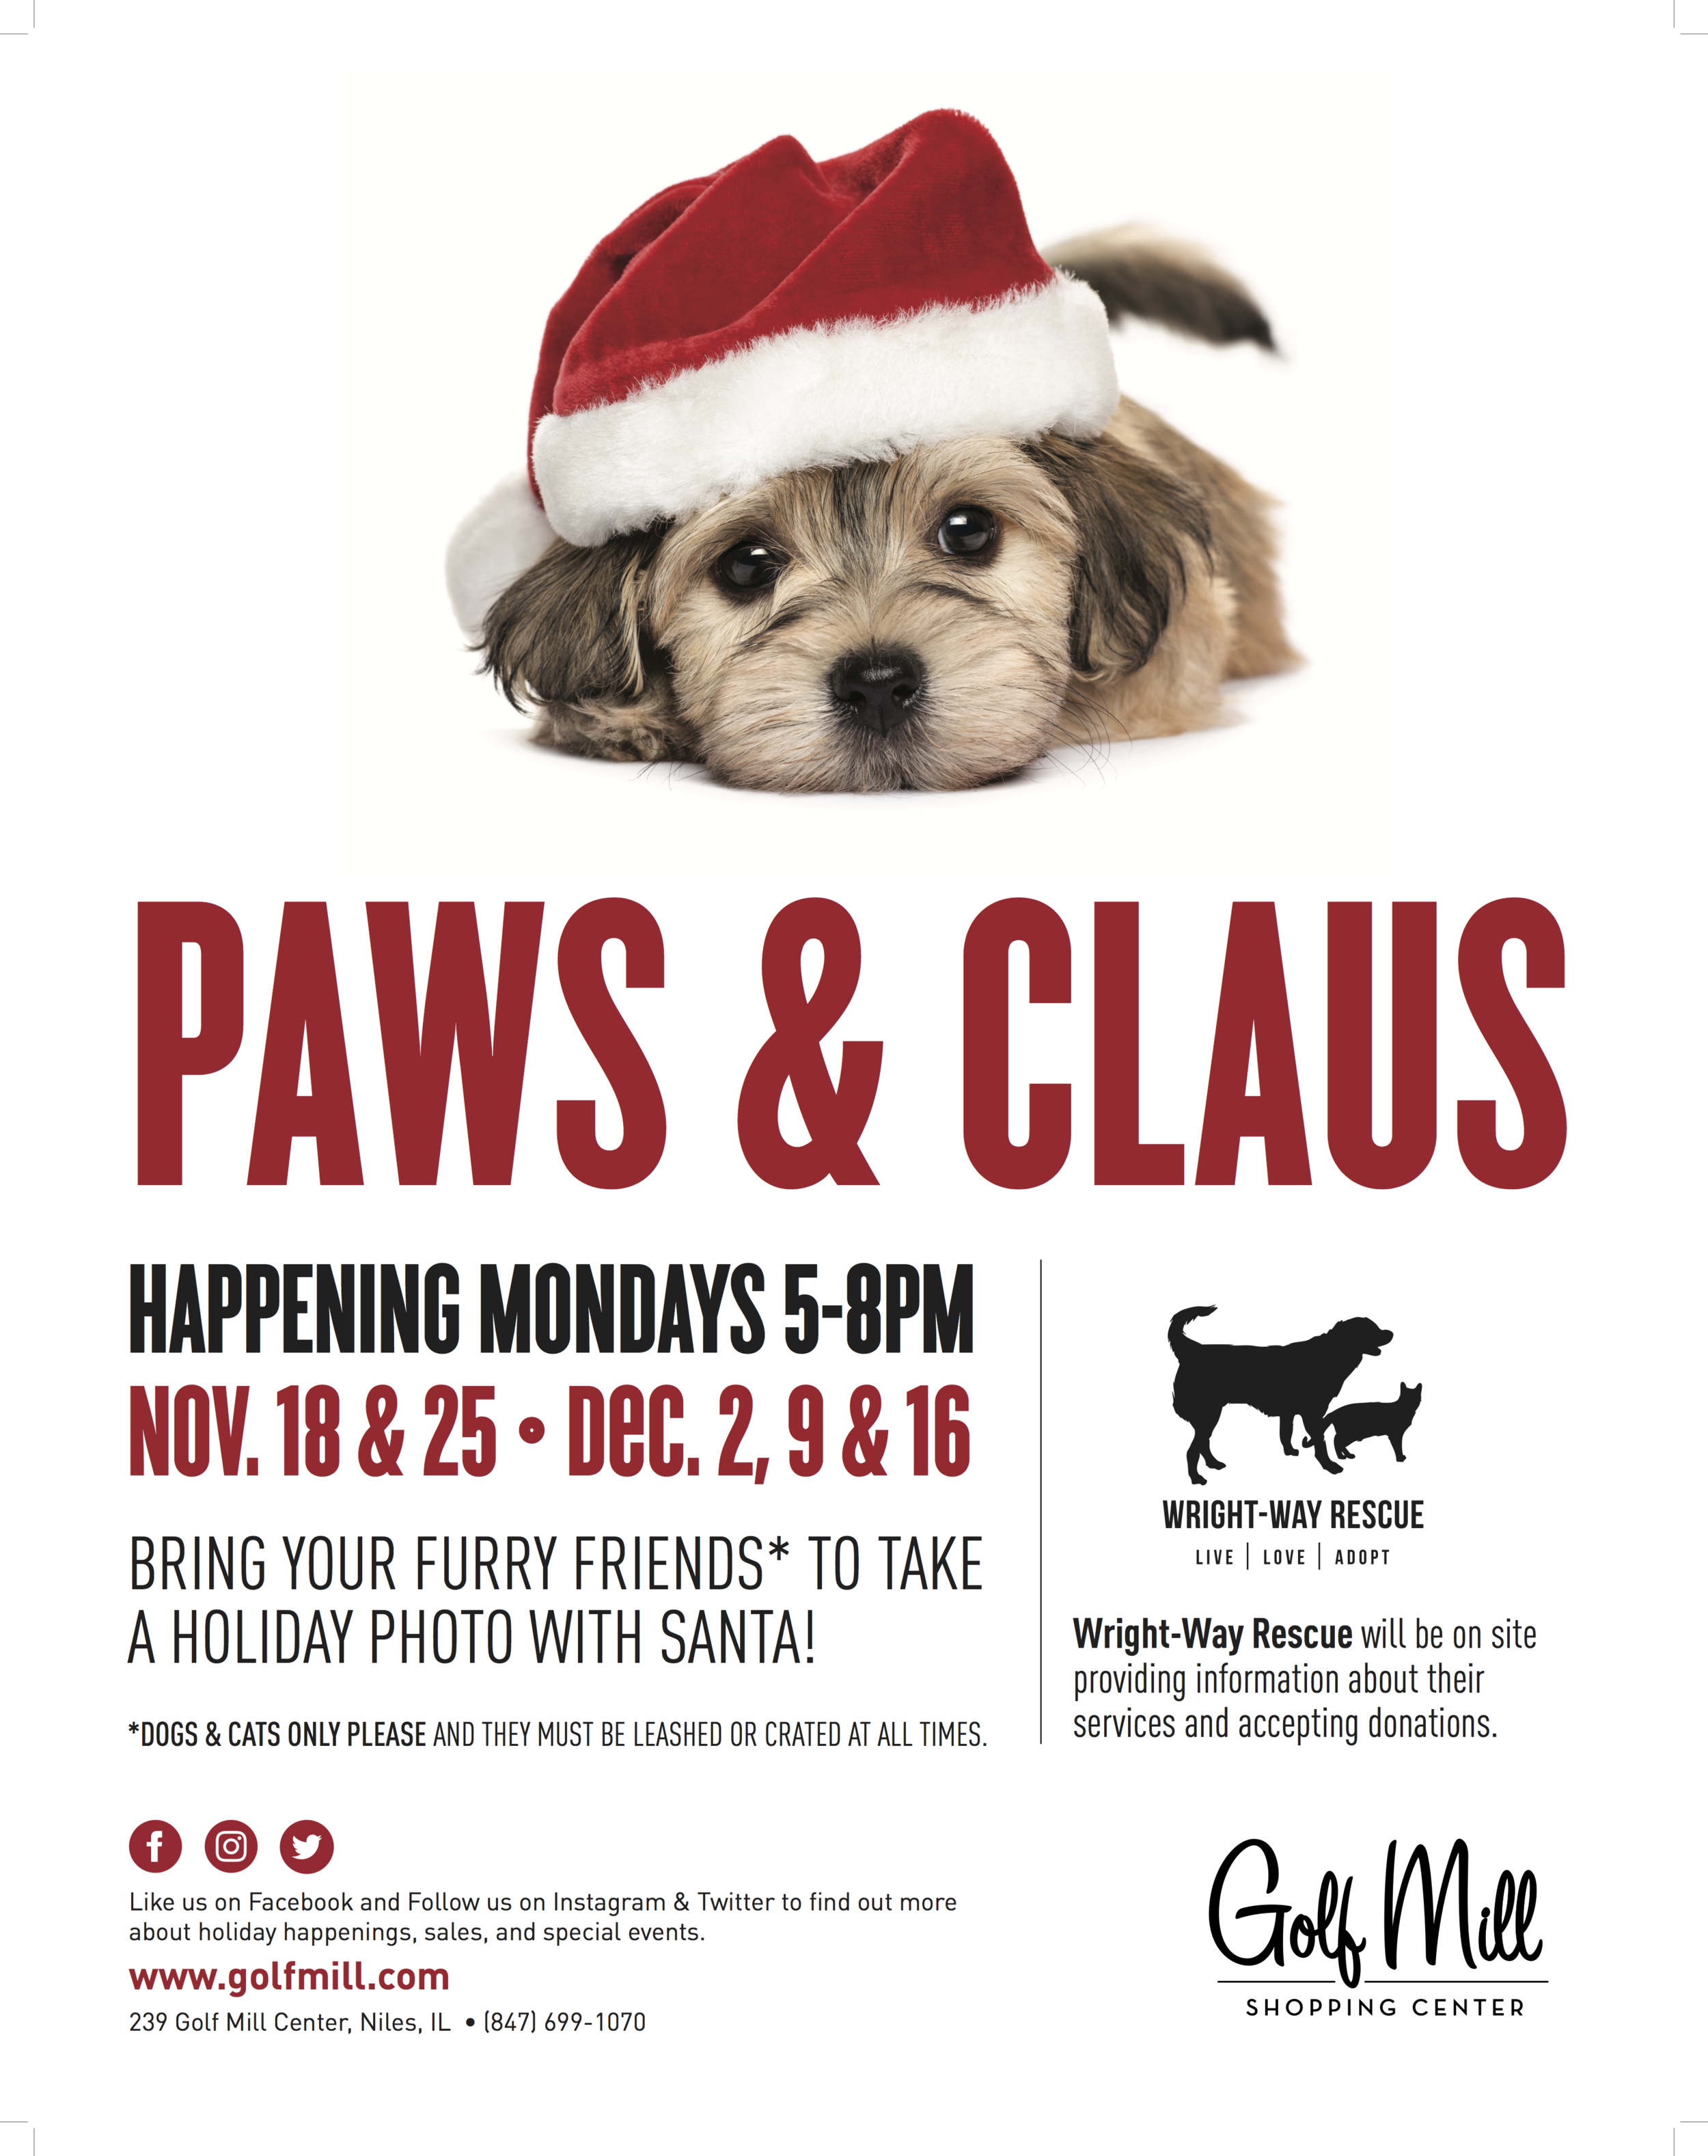 GM 2019-10-08 Paws & Claus Poster_22x28.png